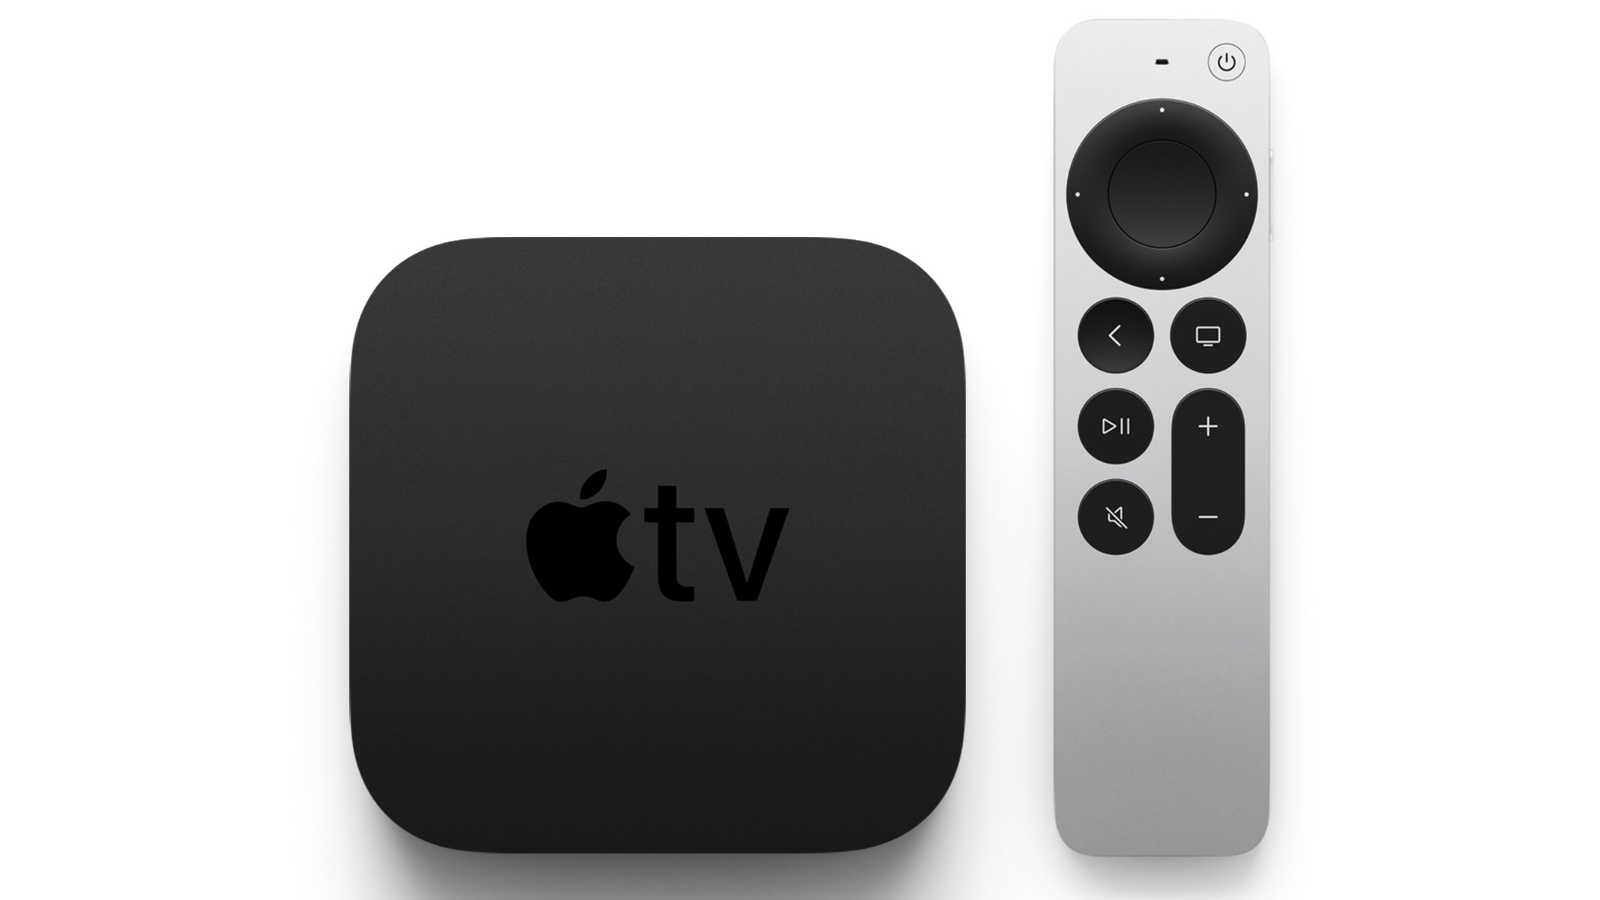 Apple-TV 4K and remote